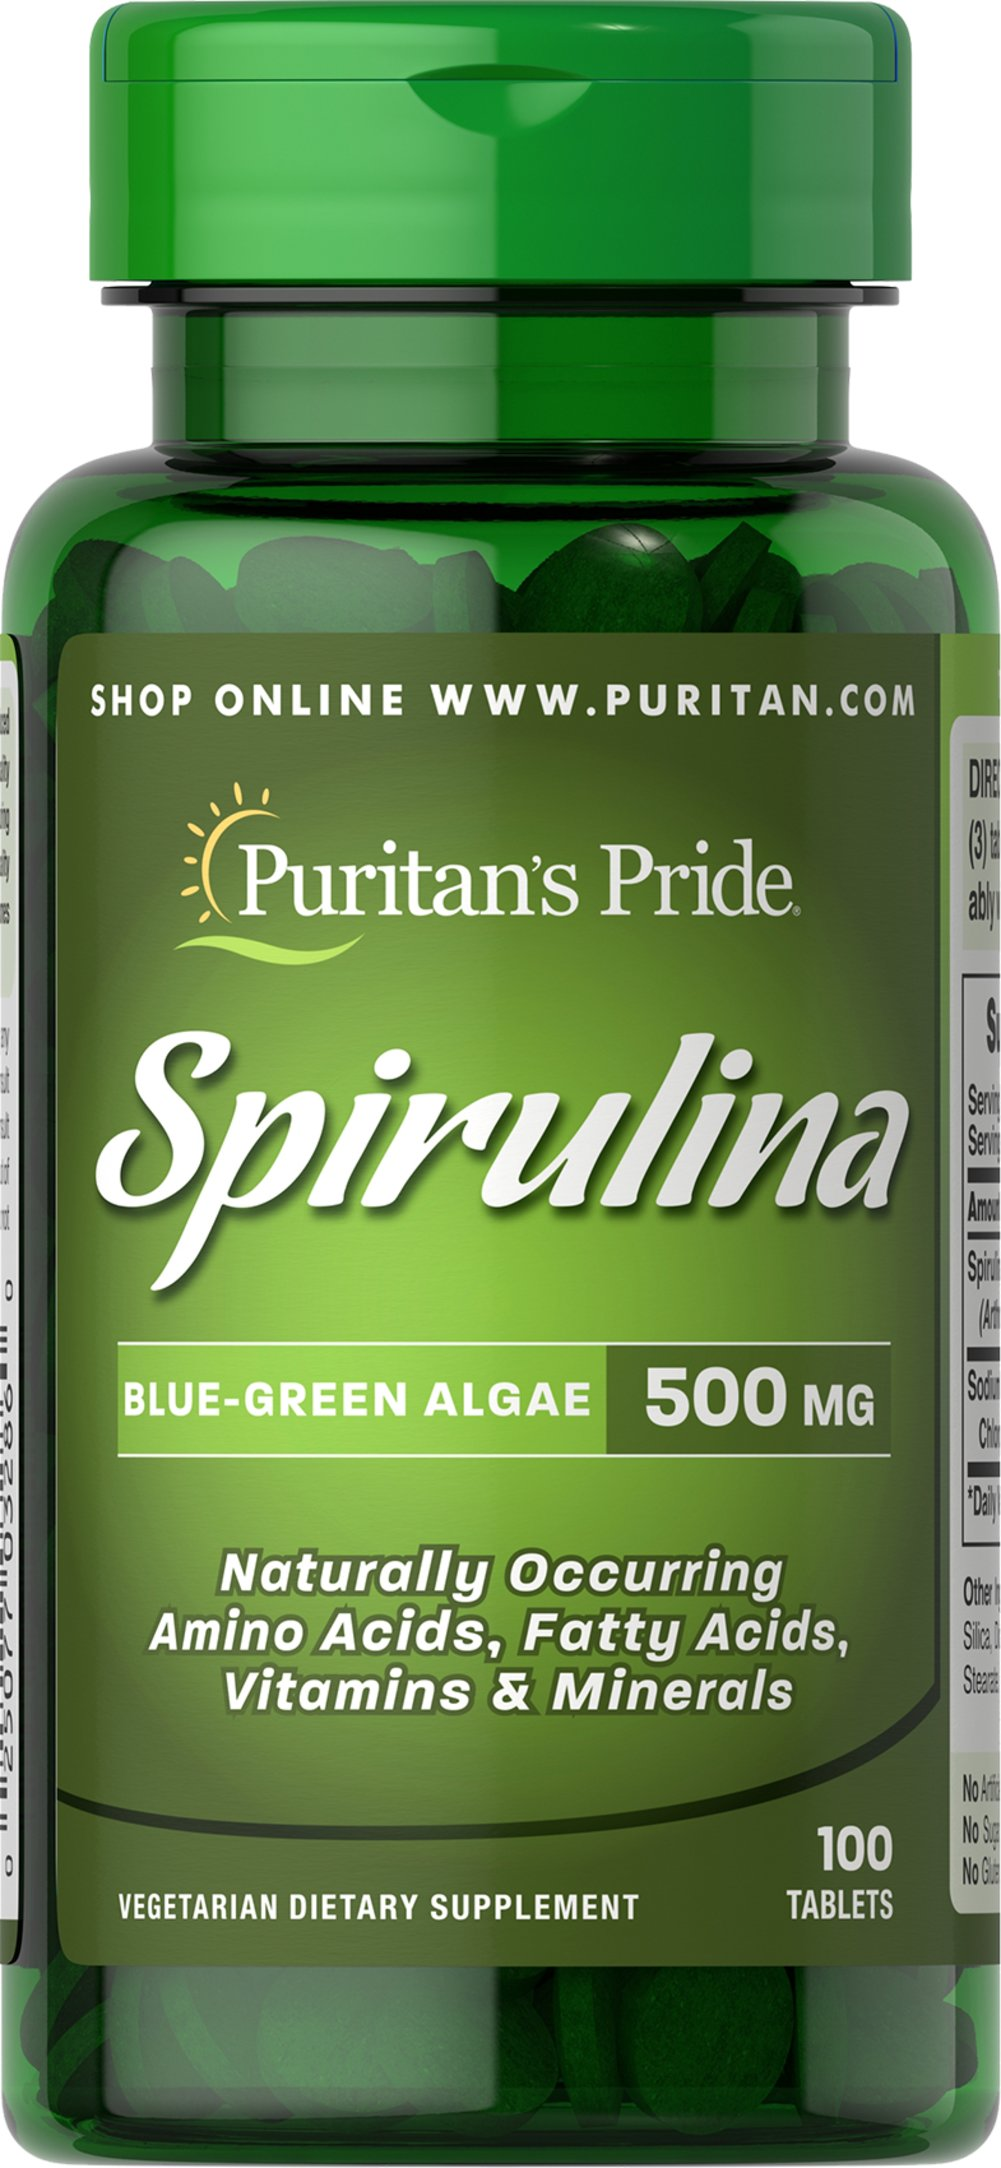 Spirulina 500 mg <p>Spirulina is a blue/green algae that can be found in the world's oceans and lakes.**</p><p>Our Spirulina's high quality 65% protein is thoroughly assimilated without the worry of cholesterol and fat that other protein sources may provide. Available in powder and tablets.</p> 100 Tablets 500 mg $13.99